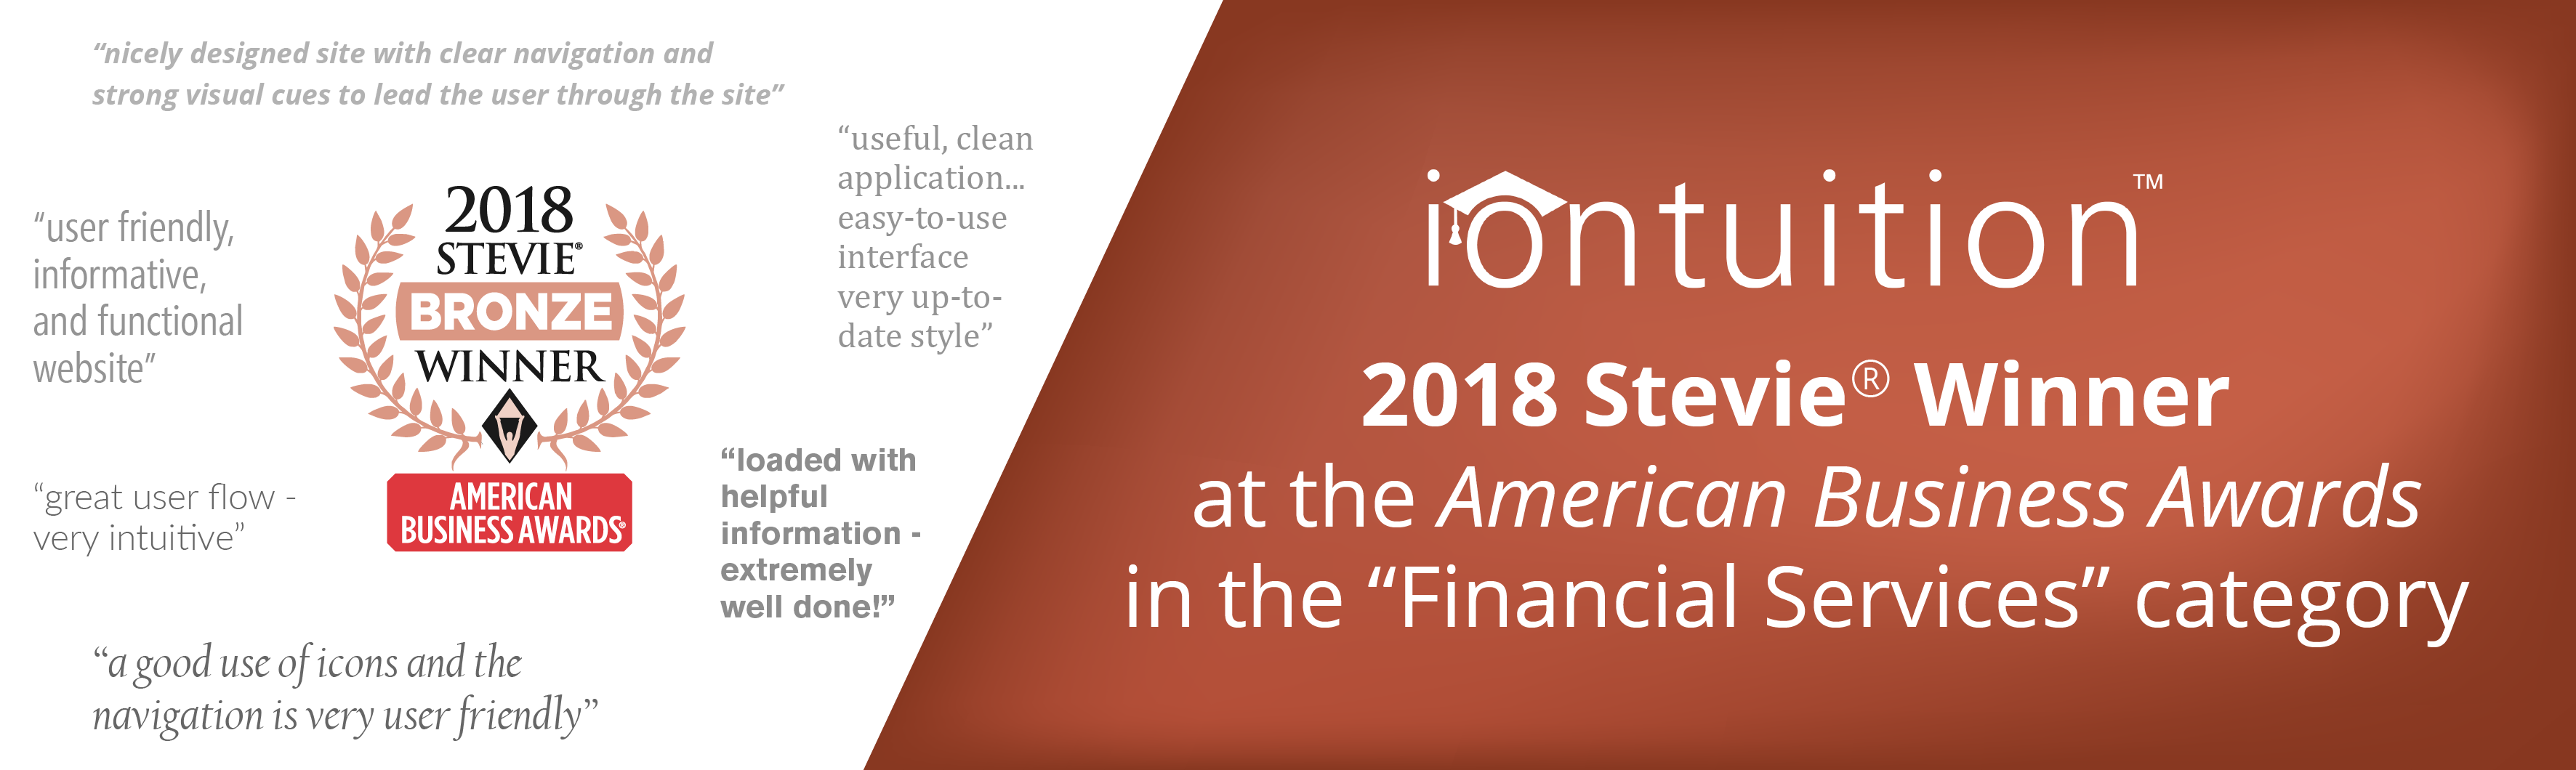 IonTuition: Winner at 2018 American Business Awards®